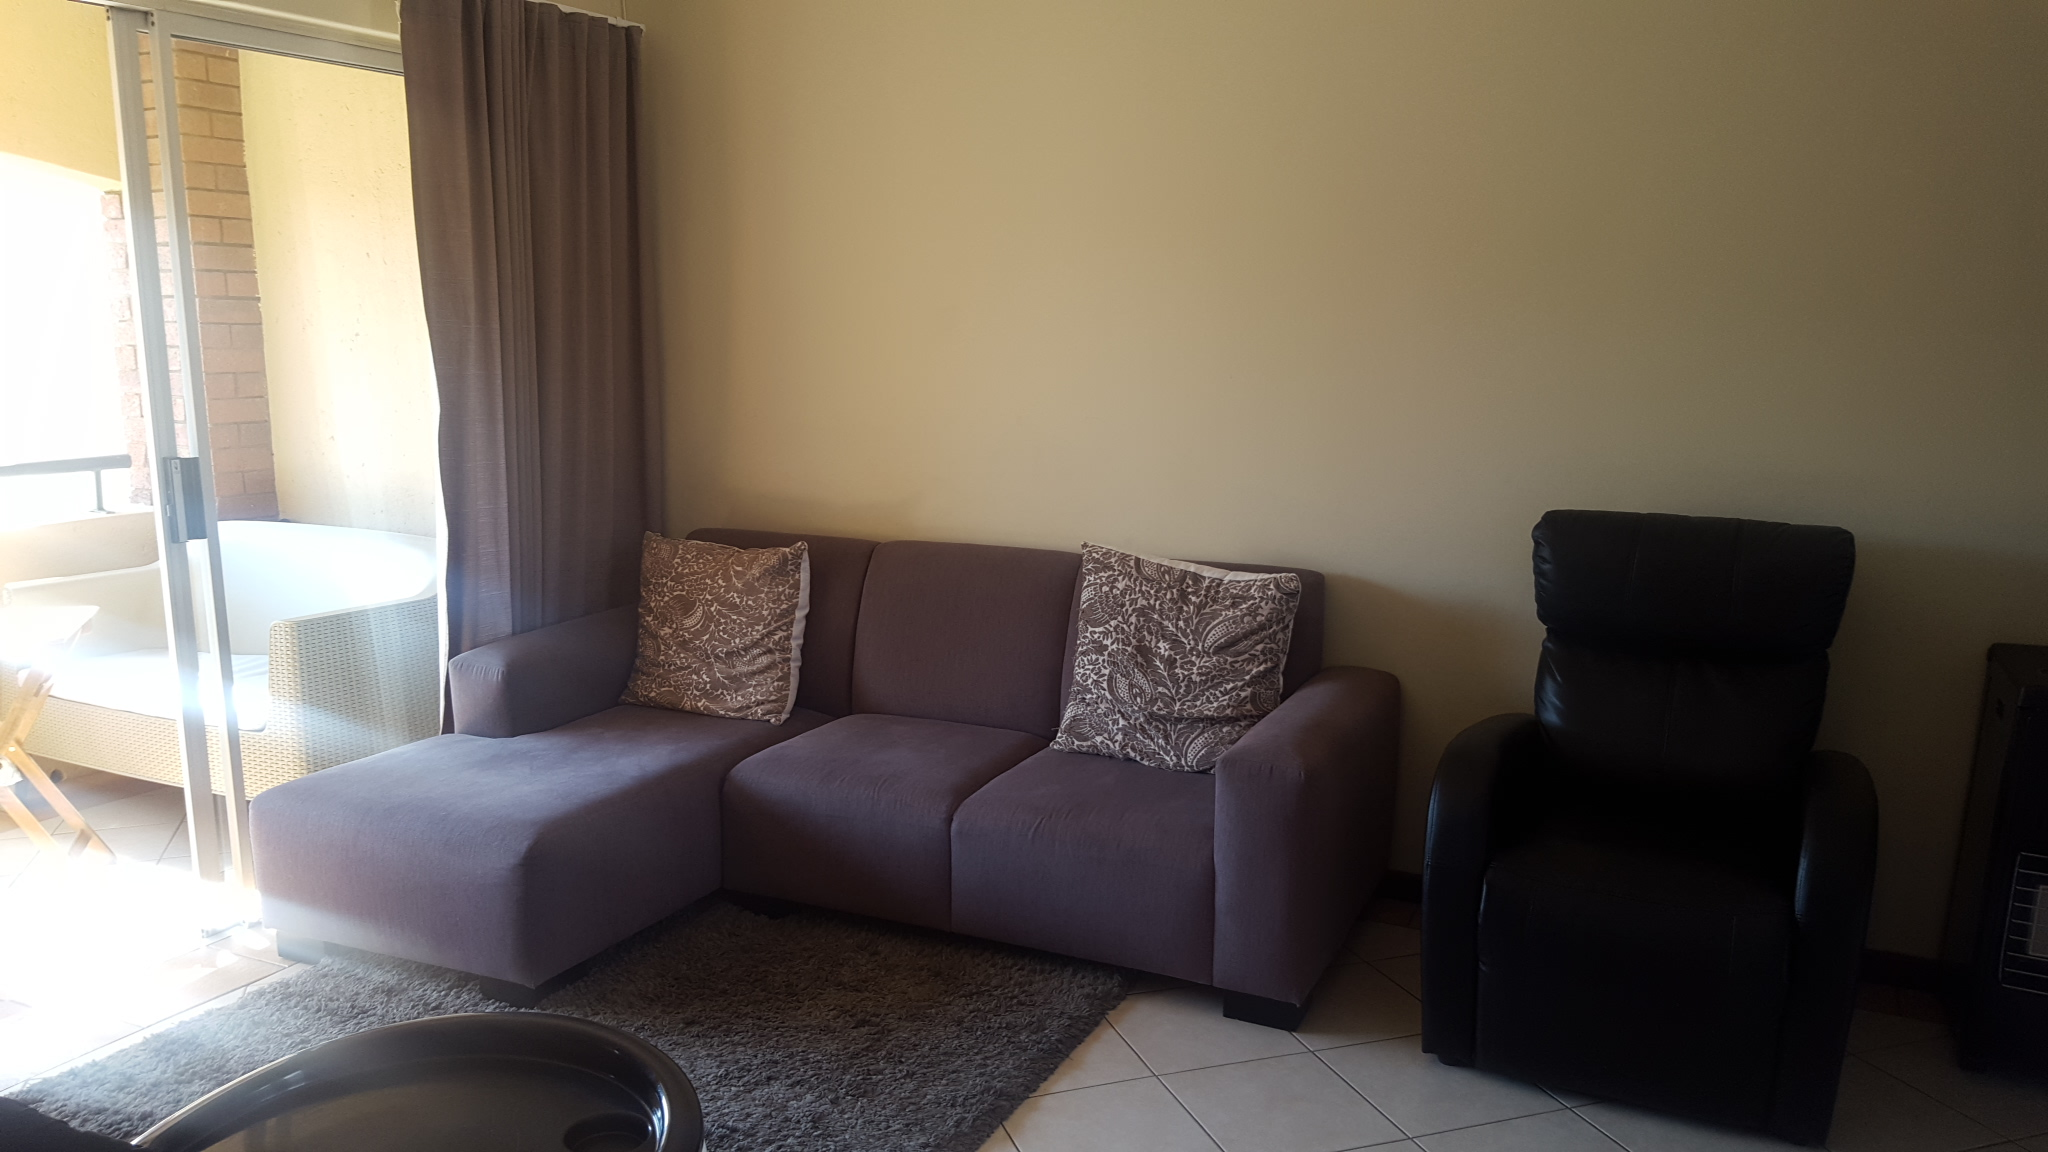 2 Bedroom Townhouse for sale in Mooikloof Ridge ENT0037652 : photo#1